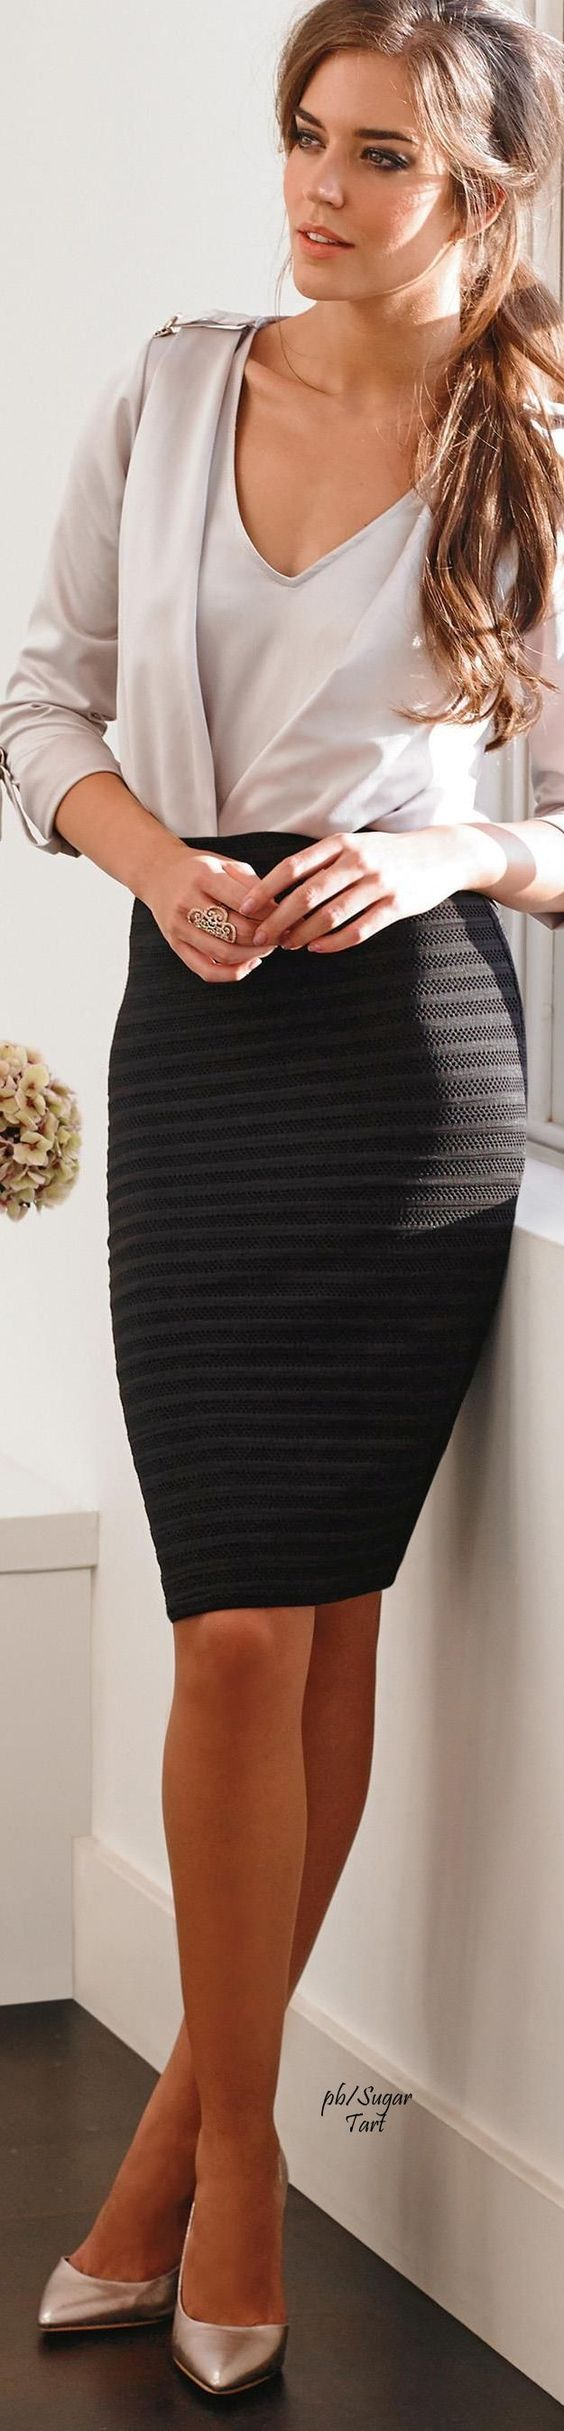 Awesome skirt. The look and fit are both perfect.